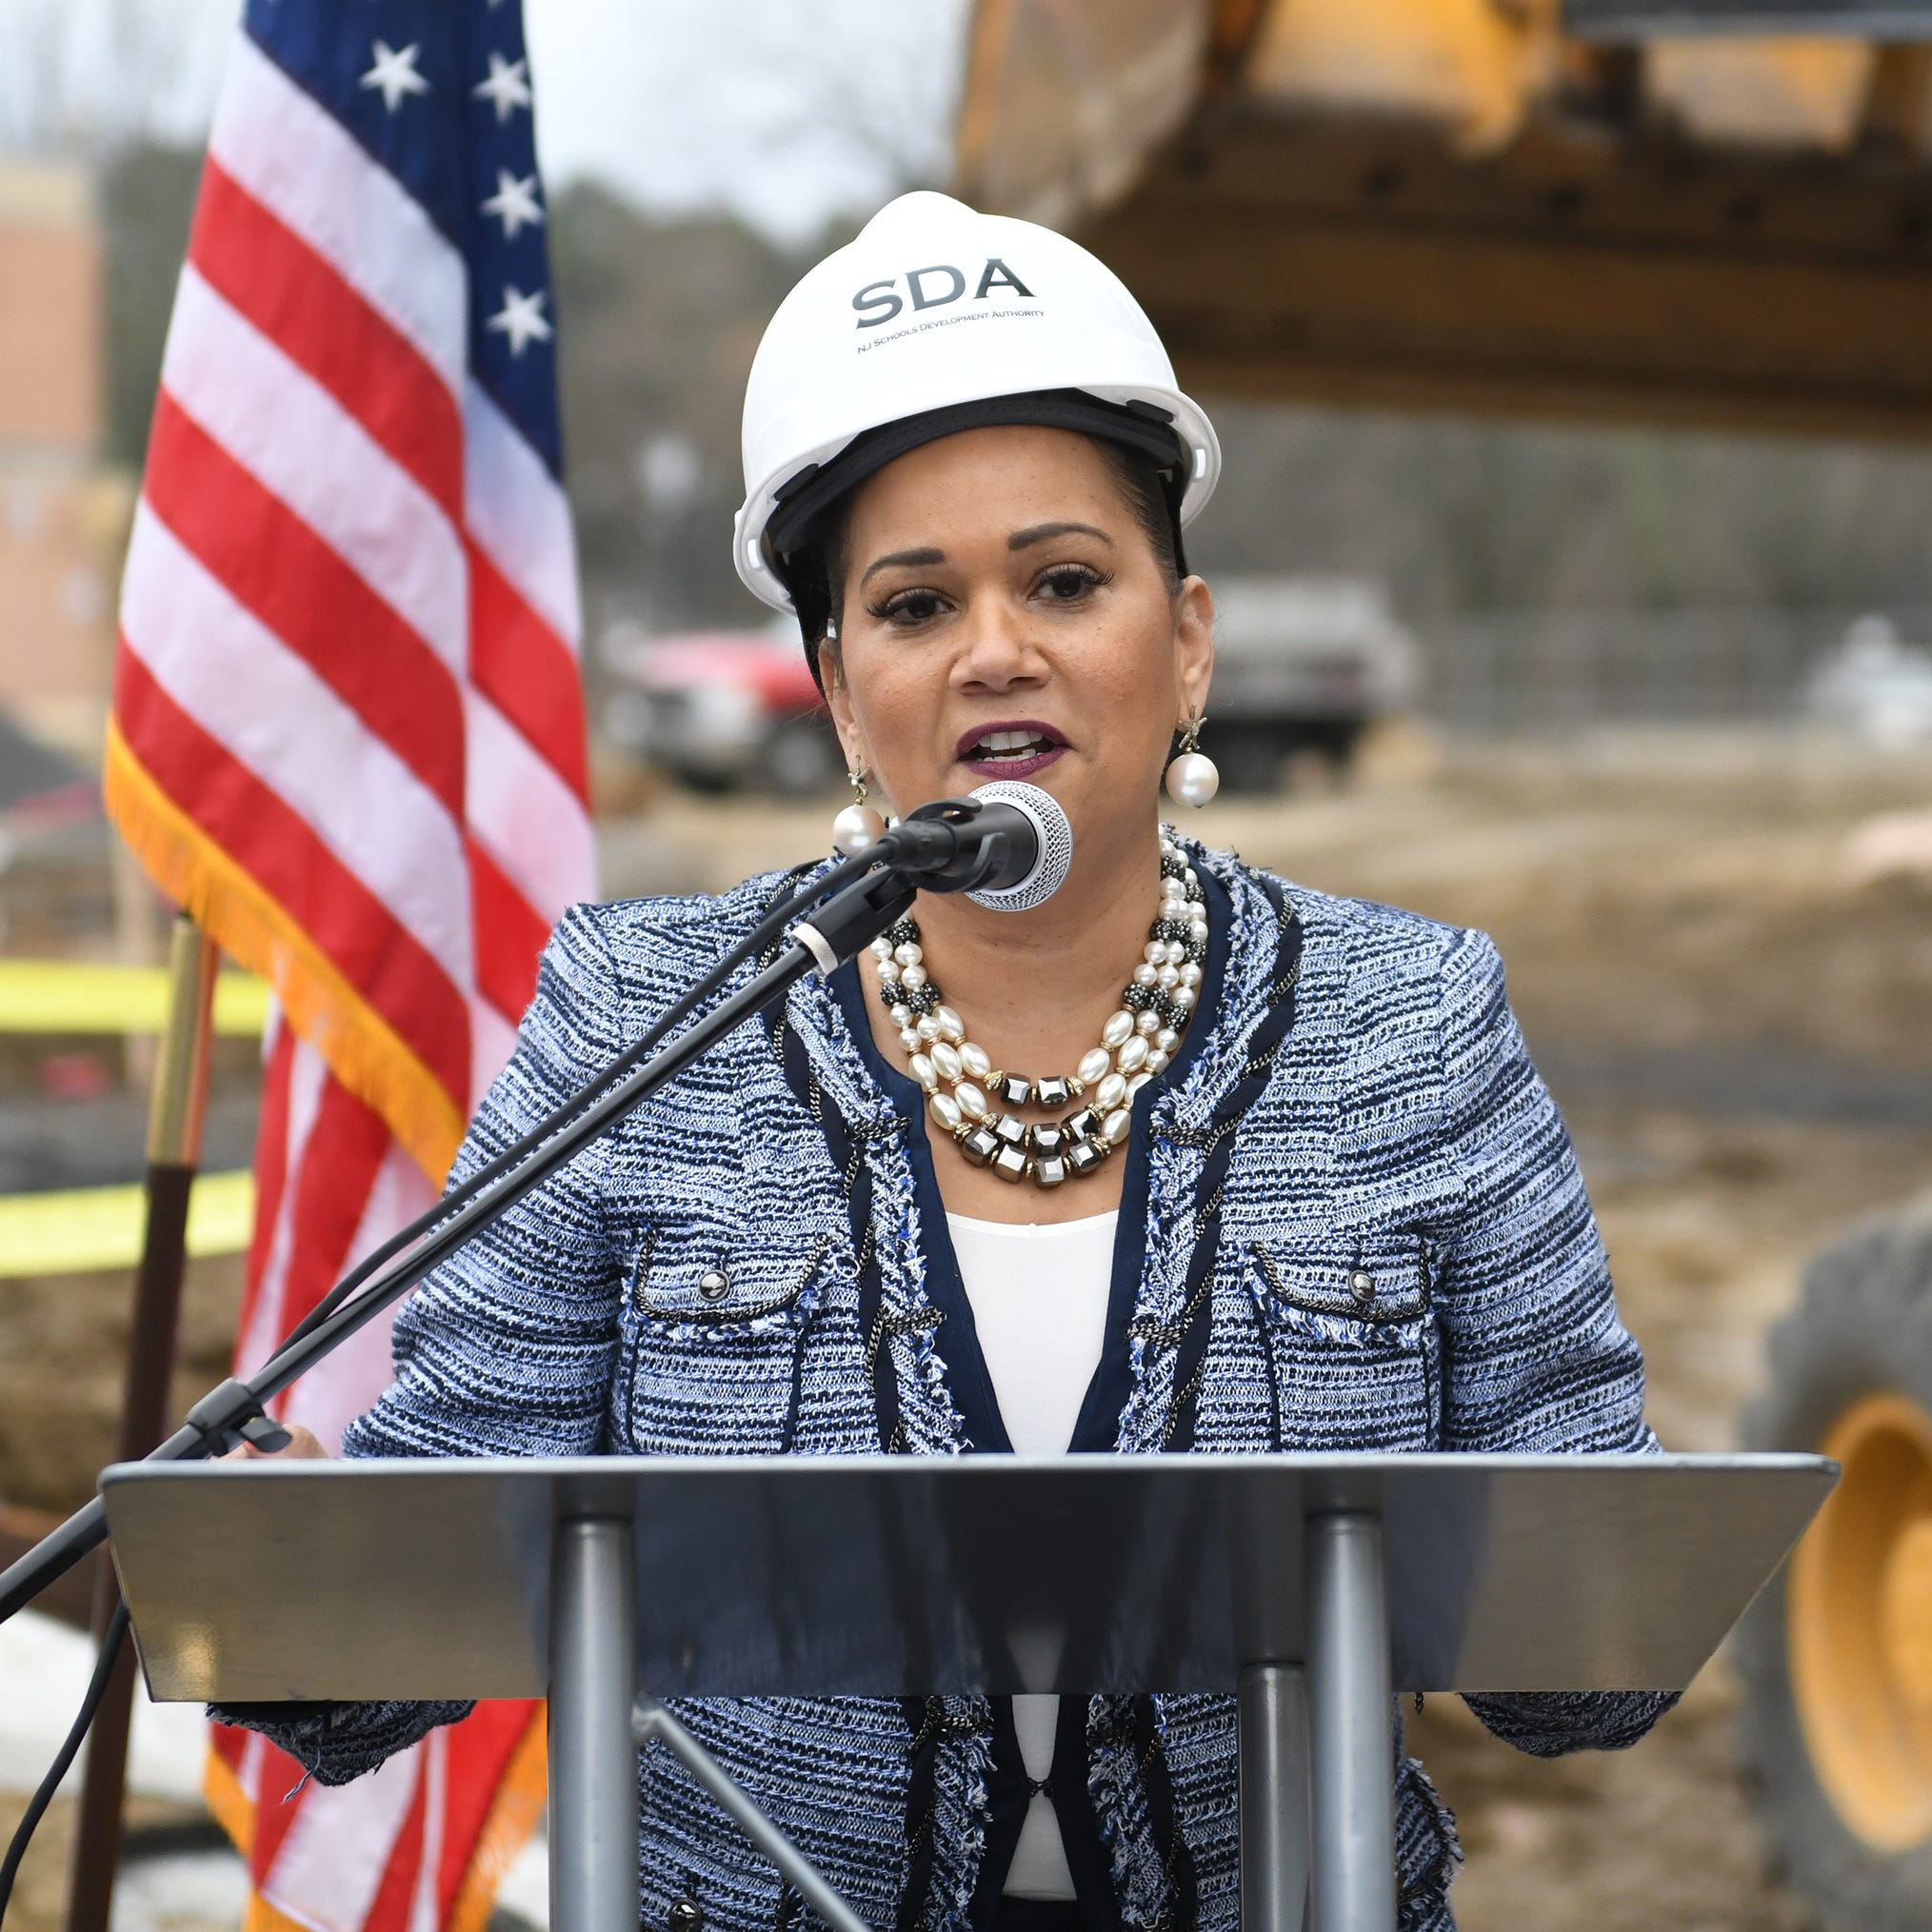 How CEO Lizette Delgado-Polanco became a powerful and controversial force in Trenton